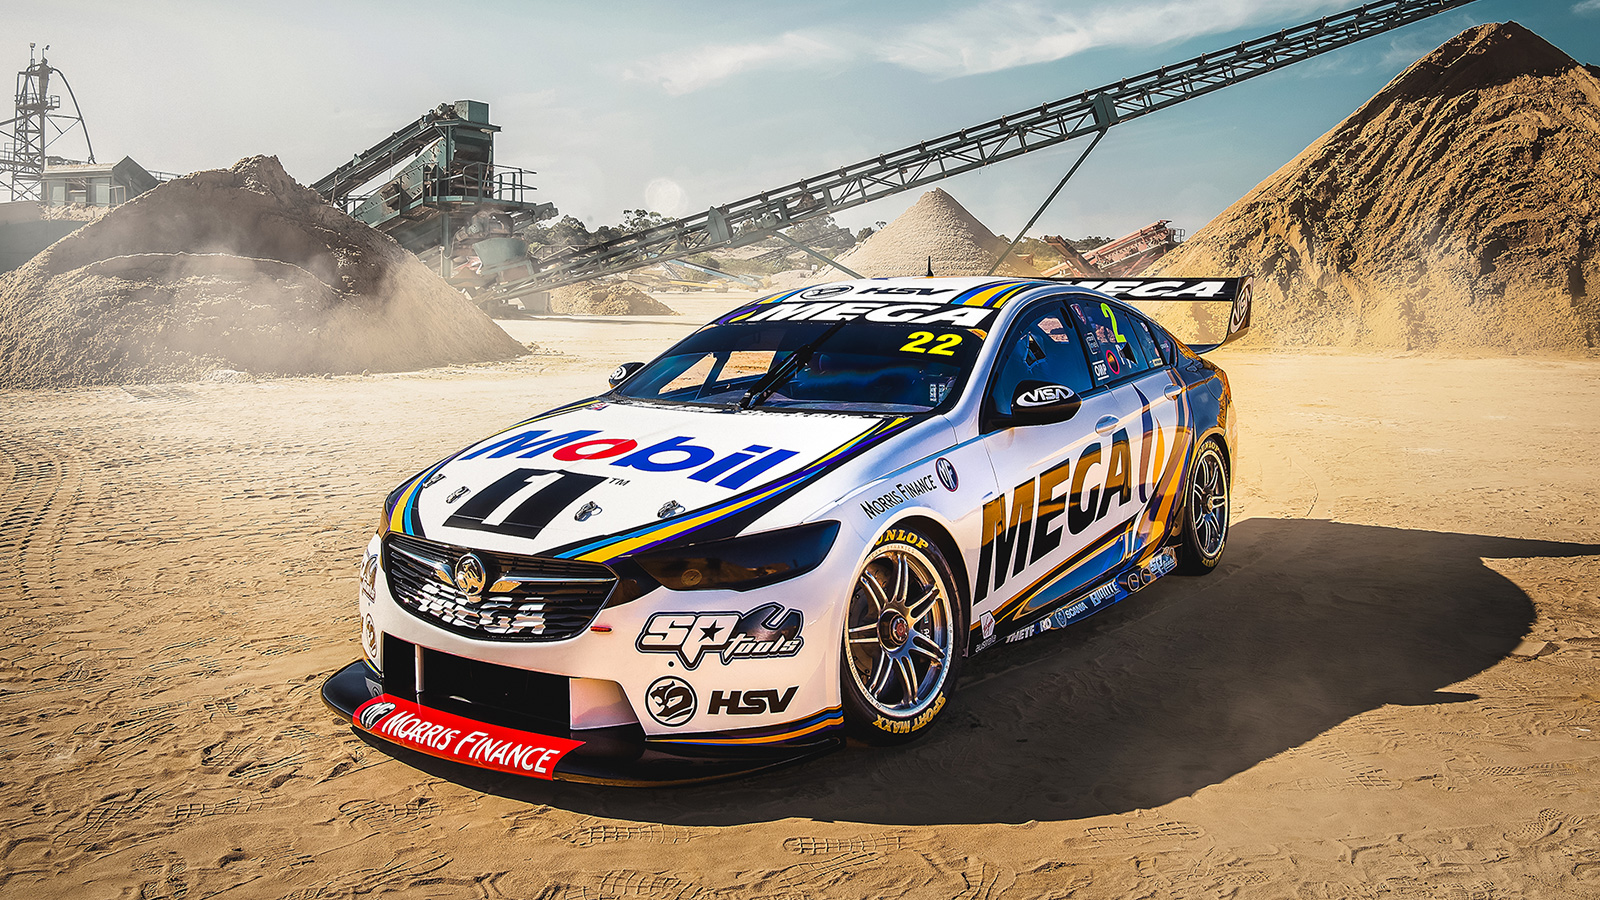 The all-new 2019 livery for Mobil 1 MEGA Racing.